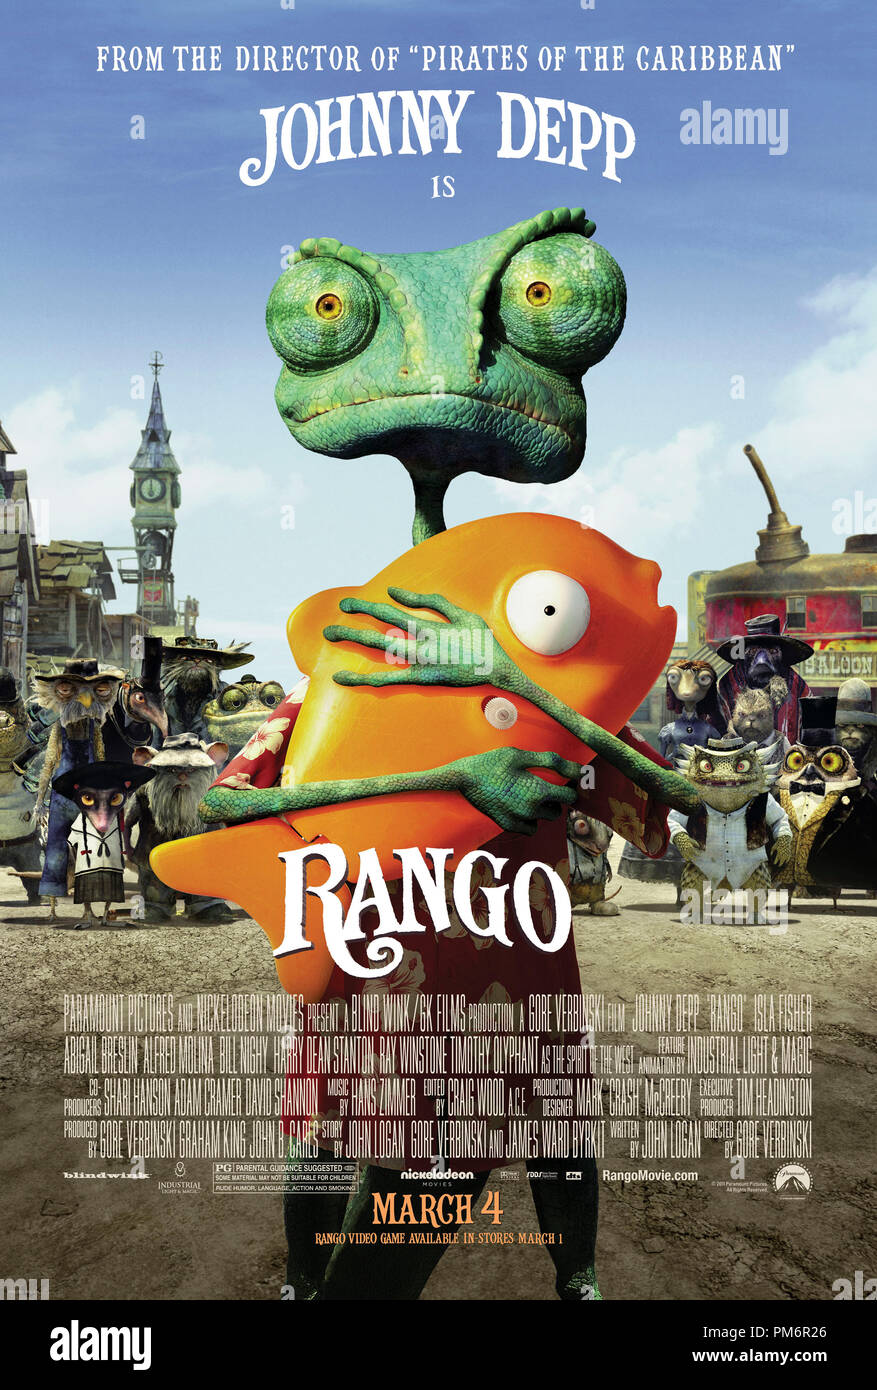 Nickelodeon Movies : nickelodeon, movies, RANGO,, Paramount, Pictures, Nickelodeon, Movies., Poster, Stock, Photo, Alamy